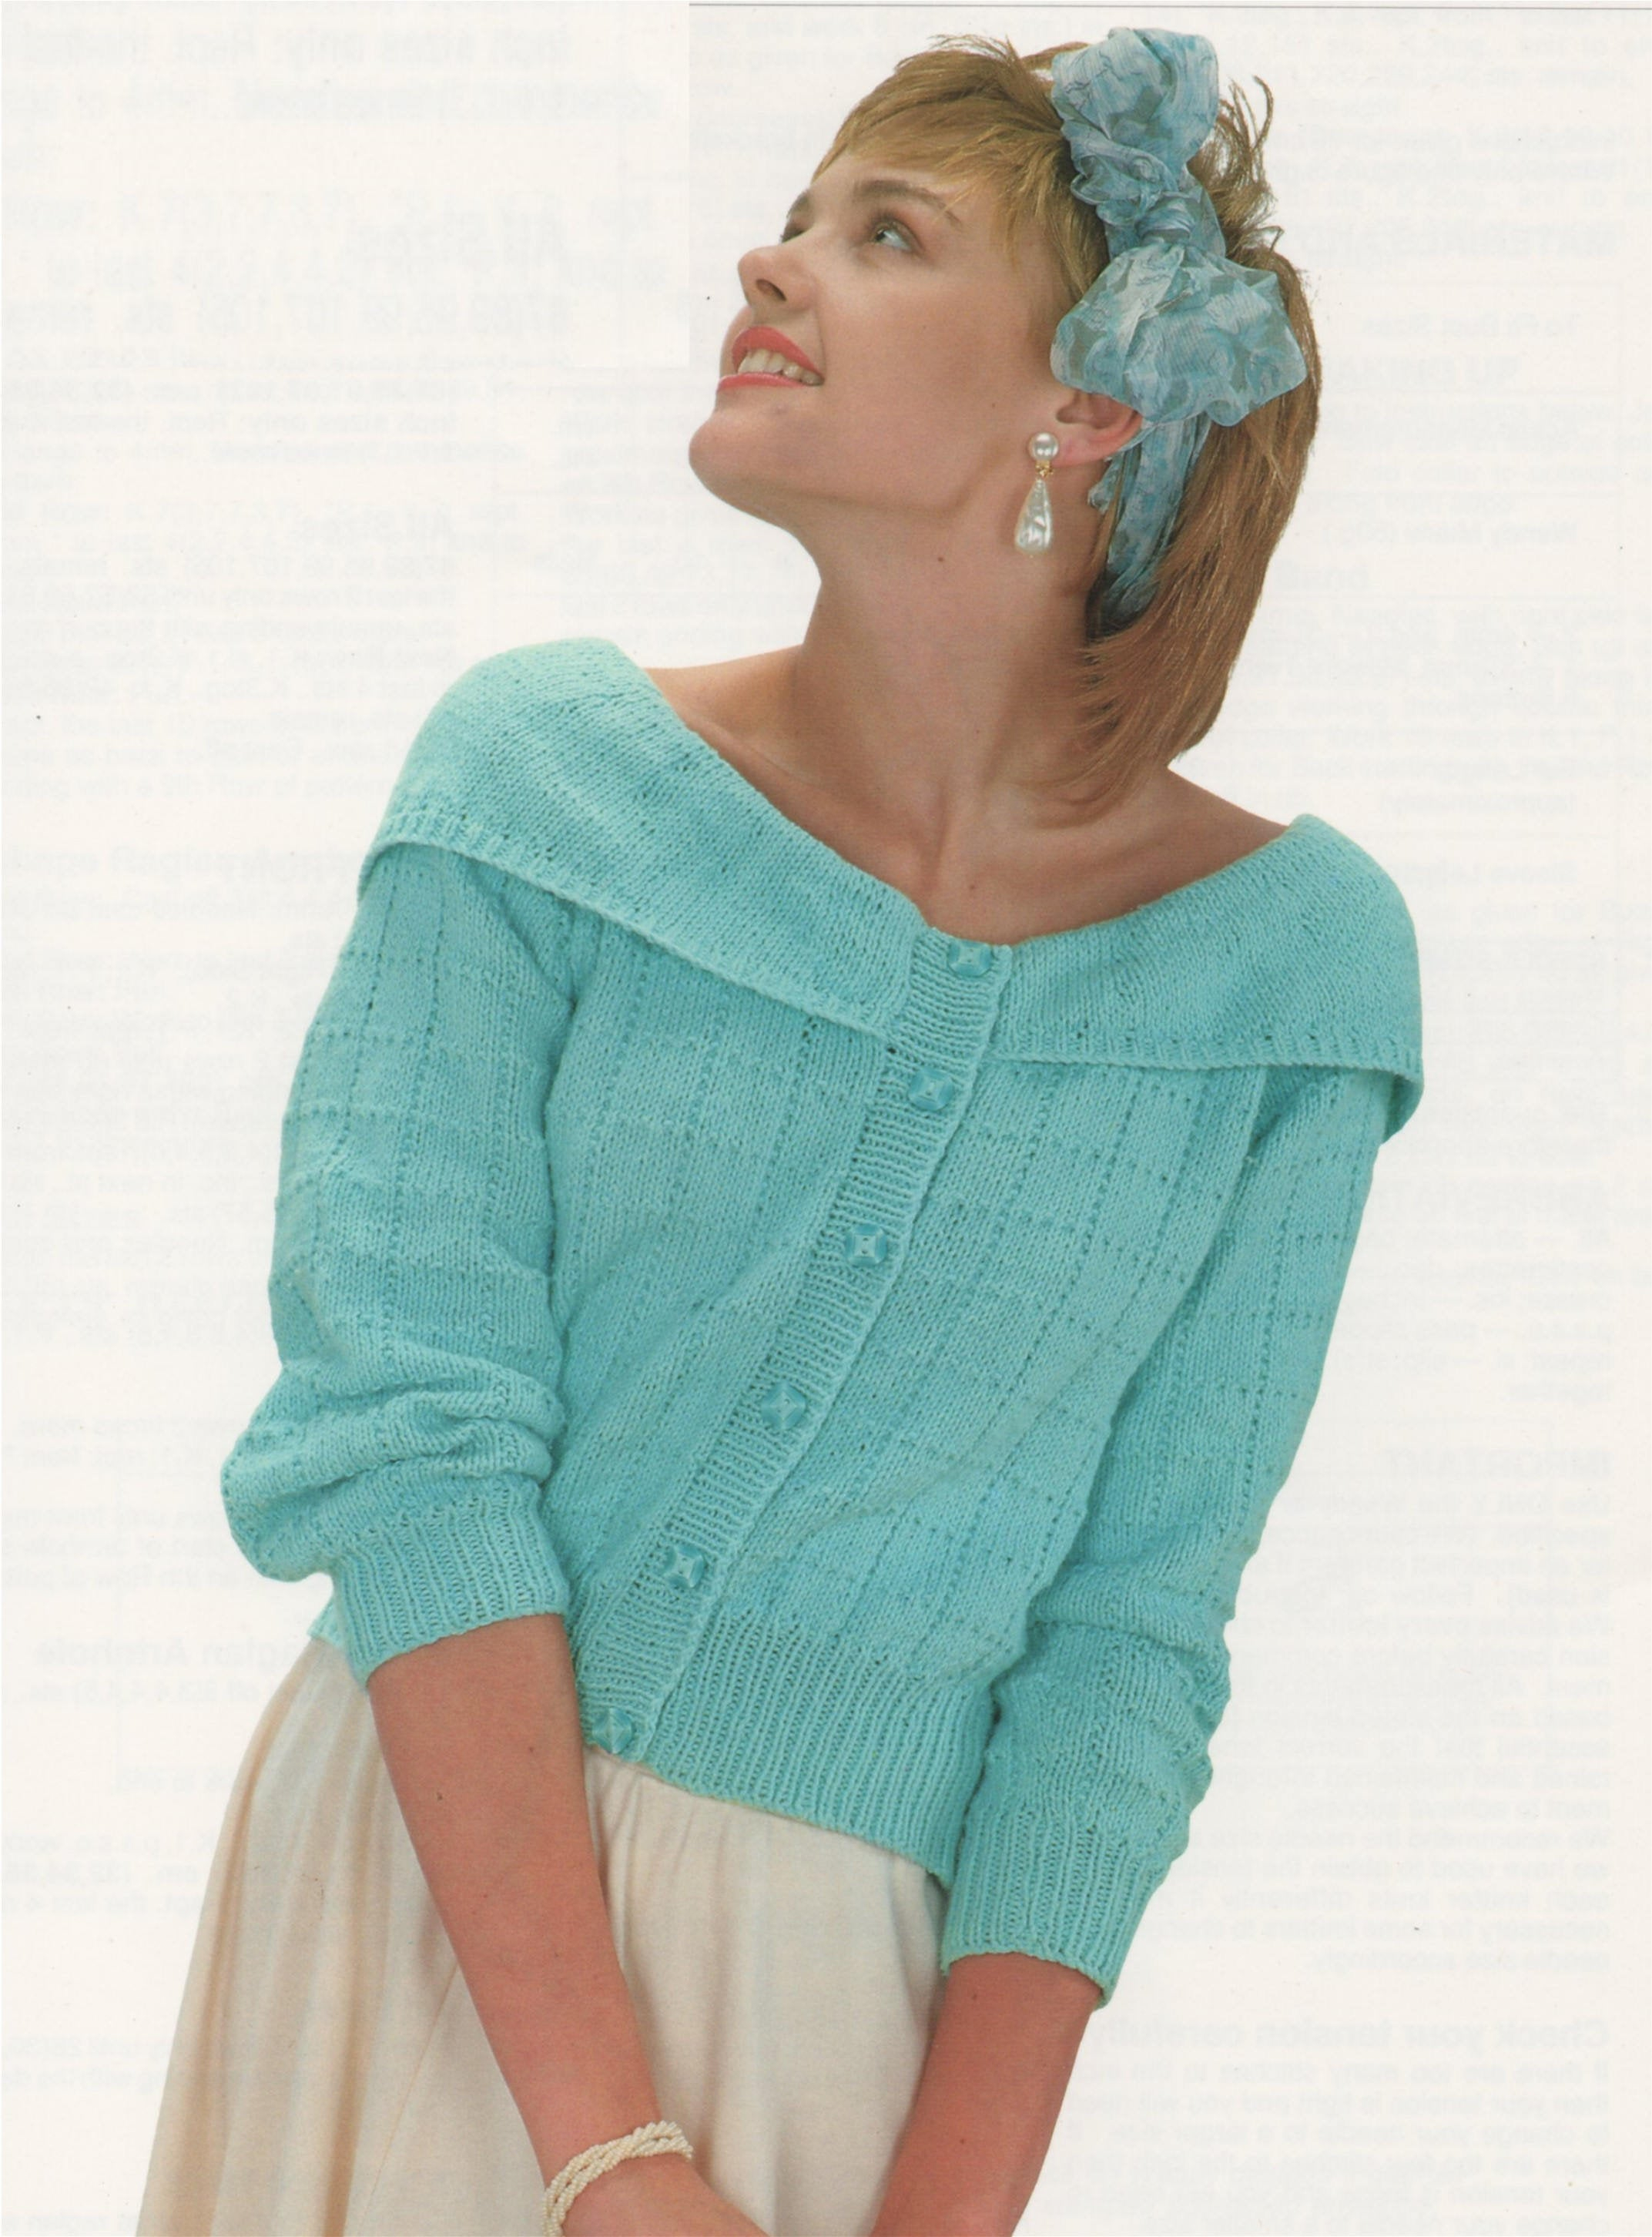 Off The Shoulder Sweater Knitting Pattern Womens Cardigan Knitting Pattern Pdf Ladies 30 32 34 36 38 And